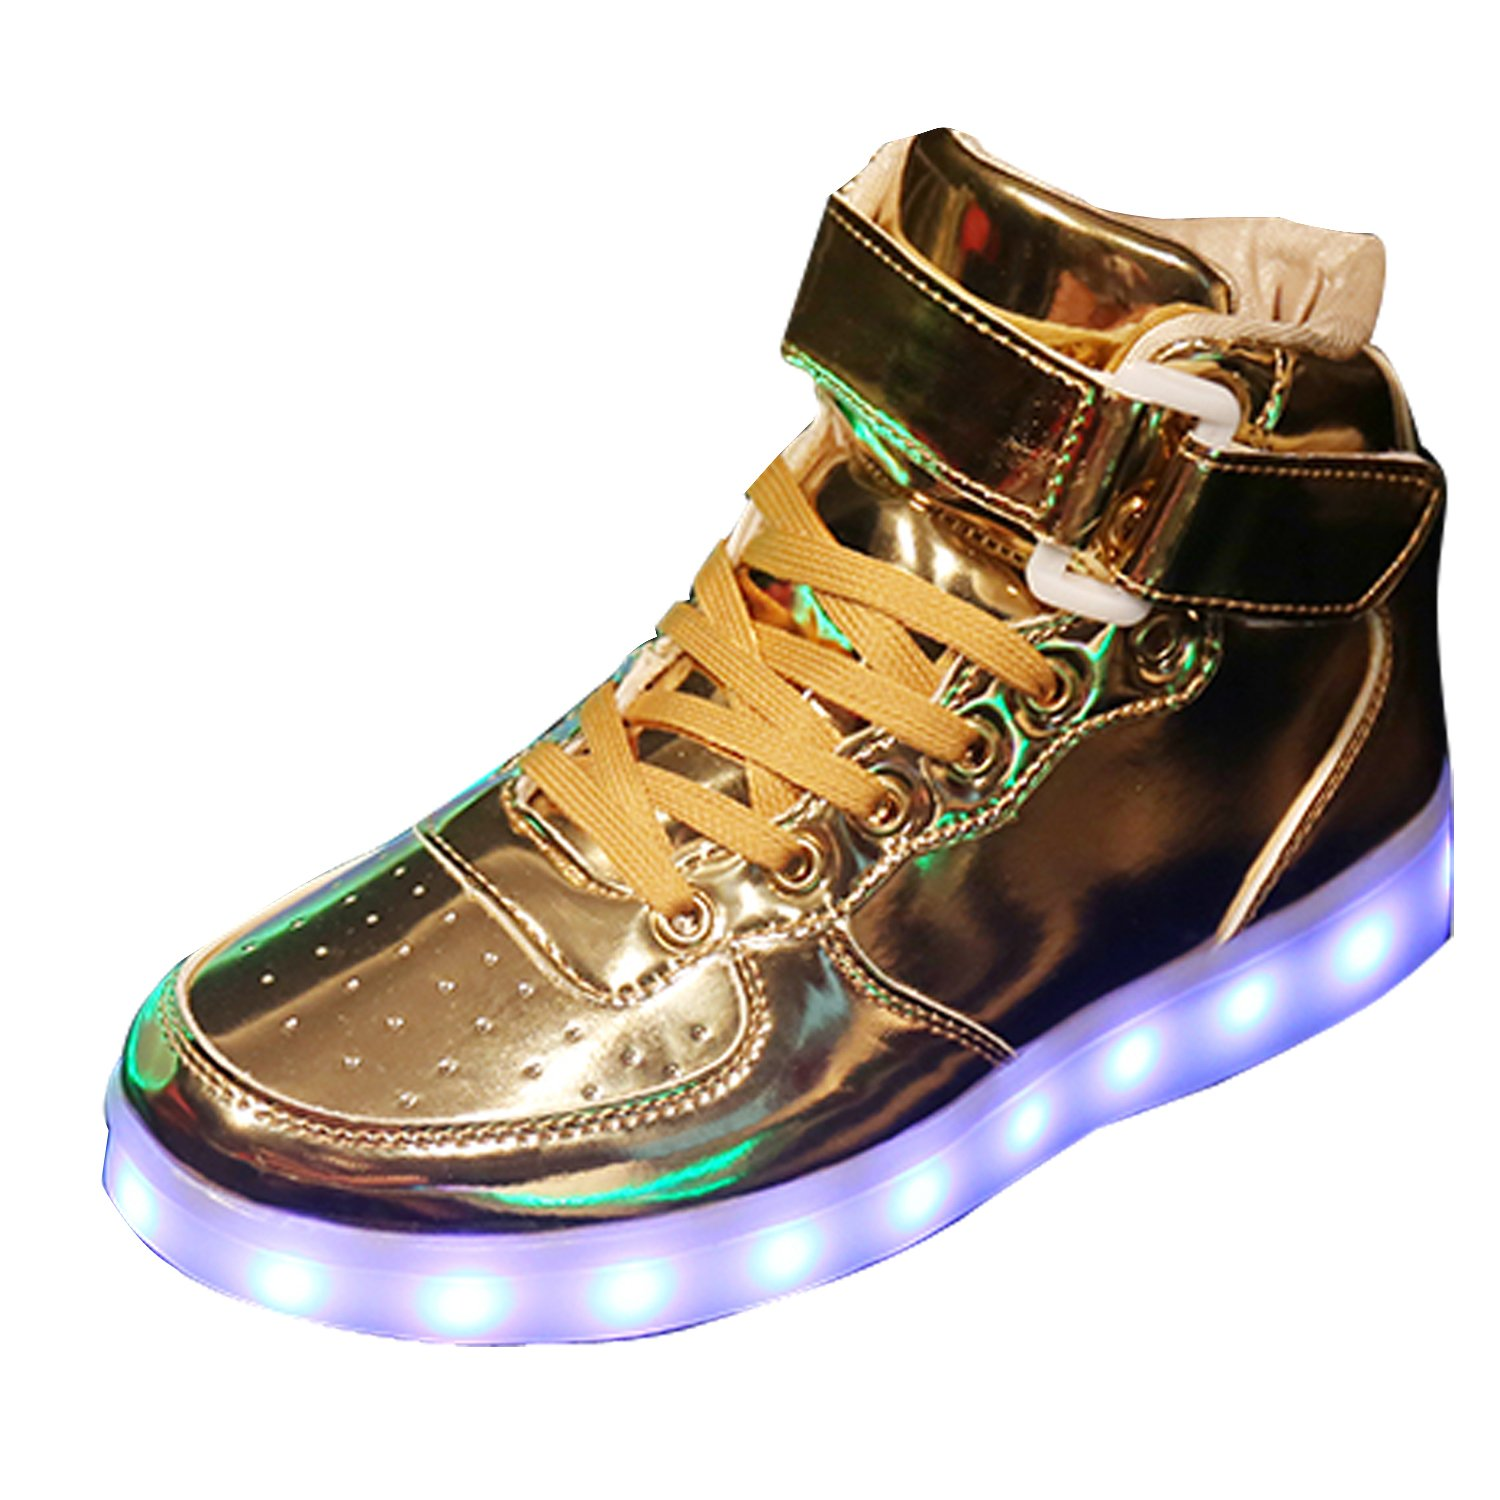 Gaorui New Women LED Light Luminous Sneaker High Top Lovers Athletic Shoes USB Charge B01LA5TJNW 6.5 B(M) US|Gold